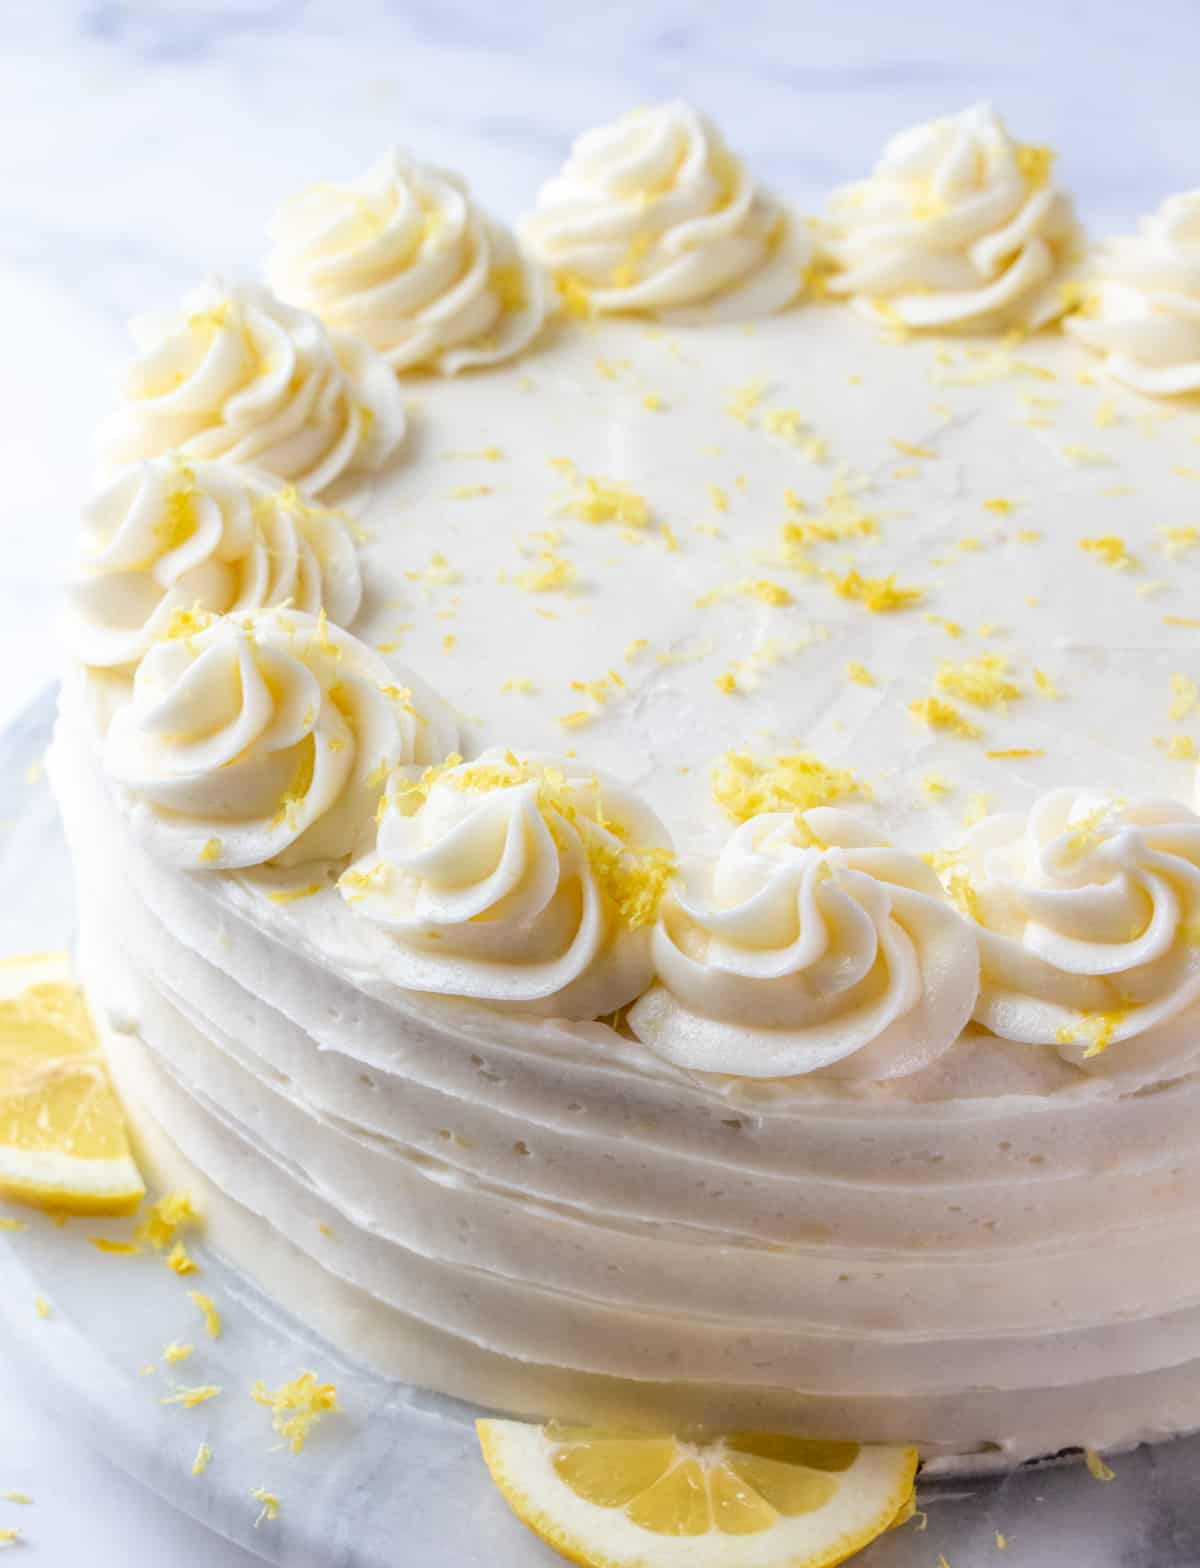 Decorated lemon layer cake on turntable with swirls, slices of lemon and lemon zest on top